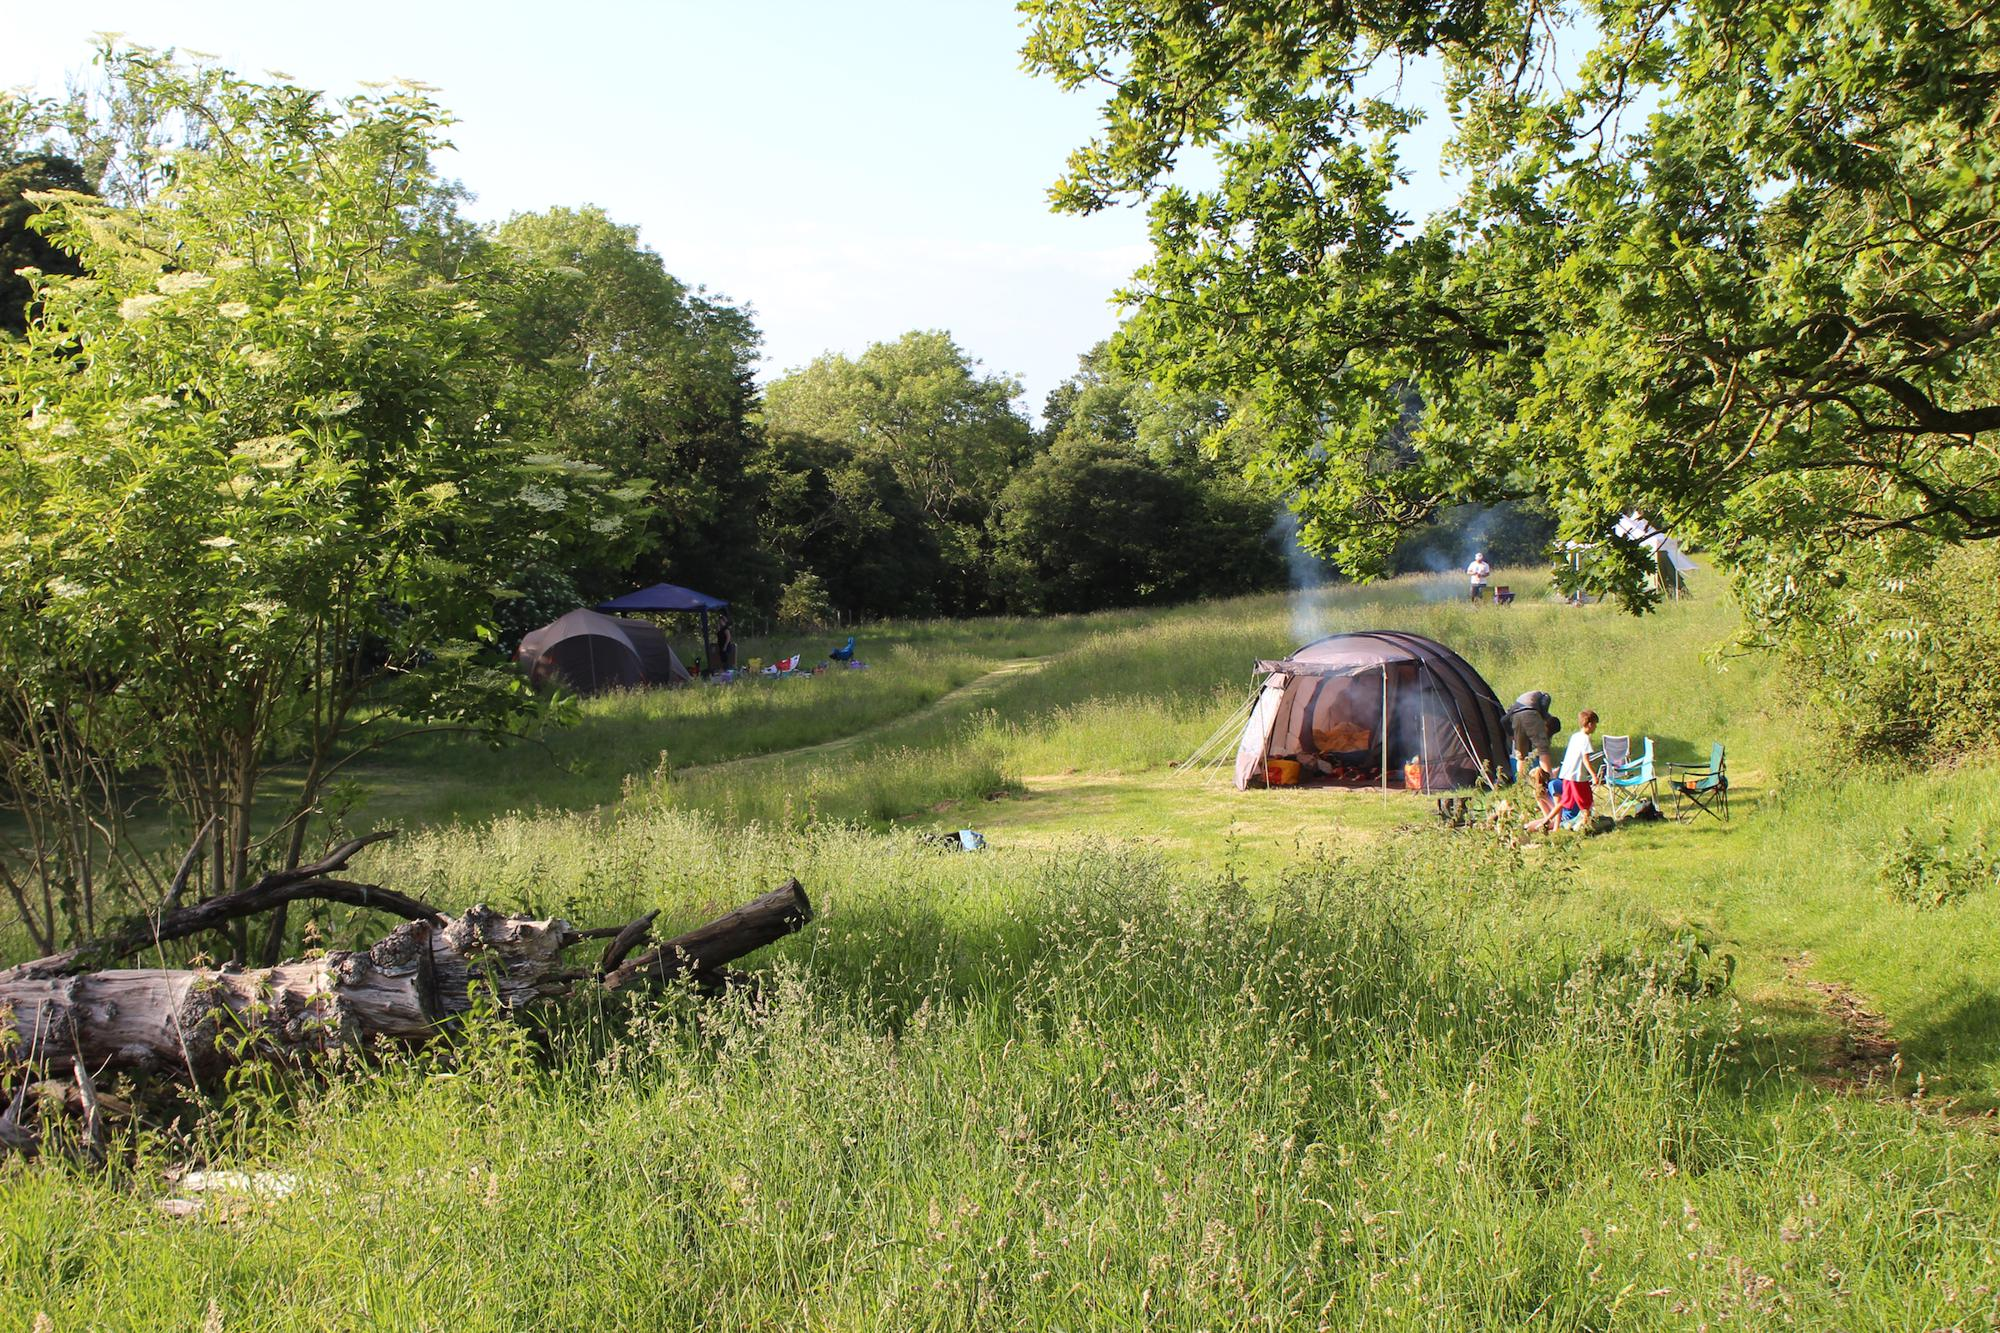 Campsites in Ashford – Cool Camping